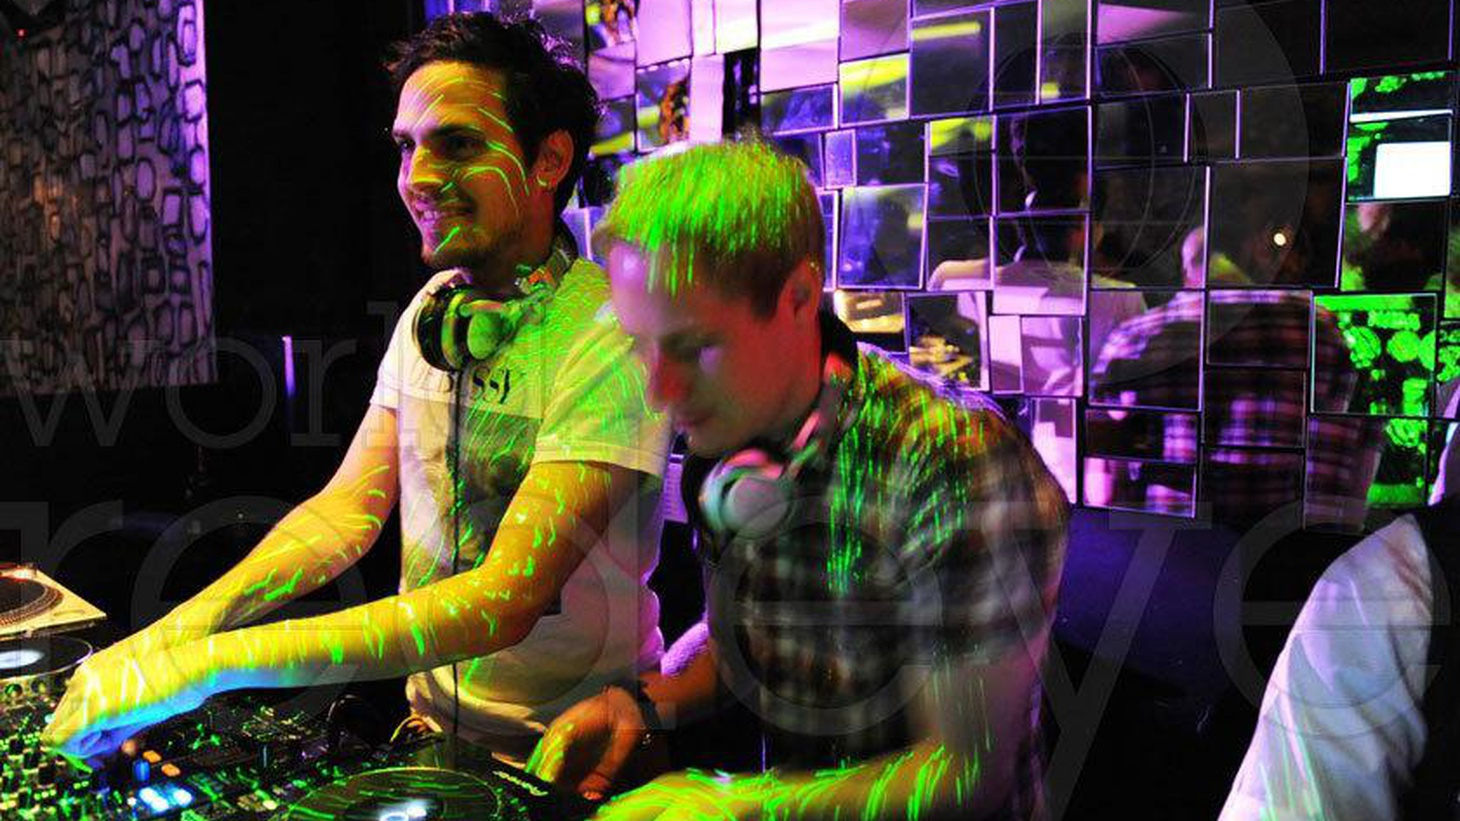 Looking for a great party mix? Then turn to LA DJ duo Classixx who have spent the last couple of years whittling down hundreds of sessions into a bouncy mix.